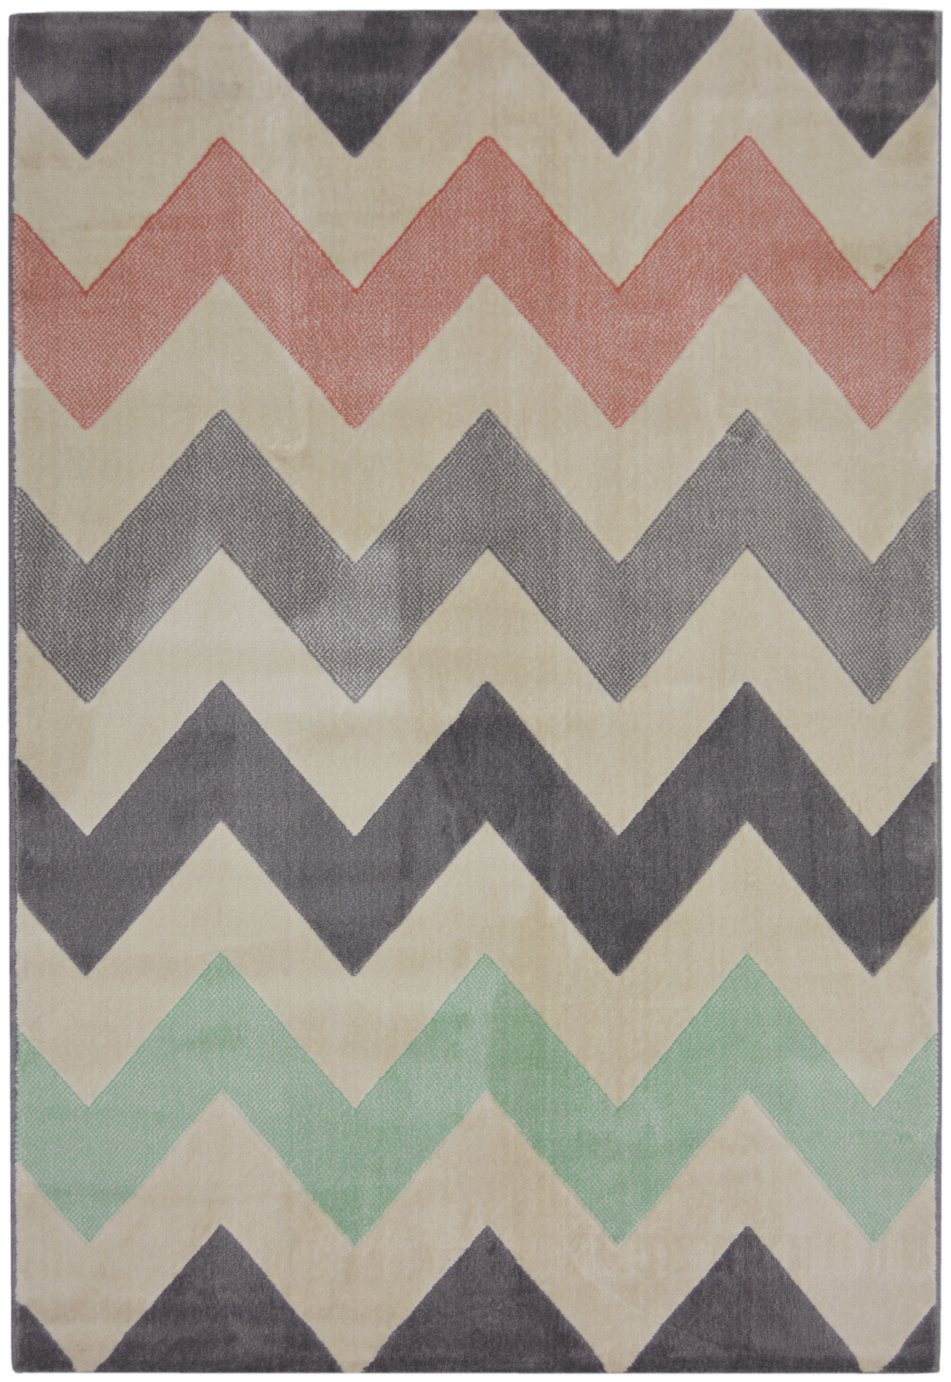 Creation Chevron Rug - 160x230cm - Multicoloured